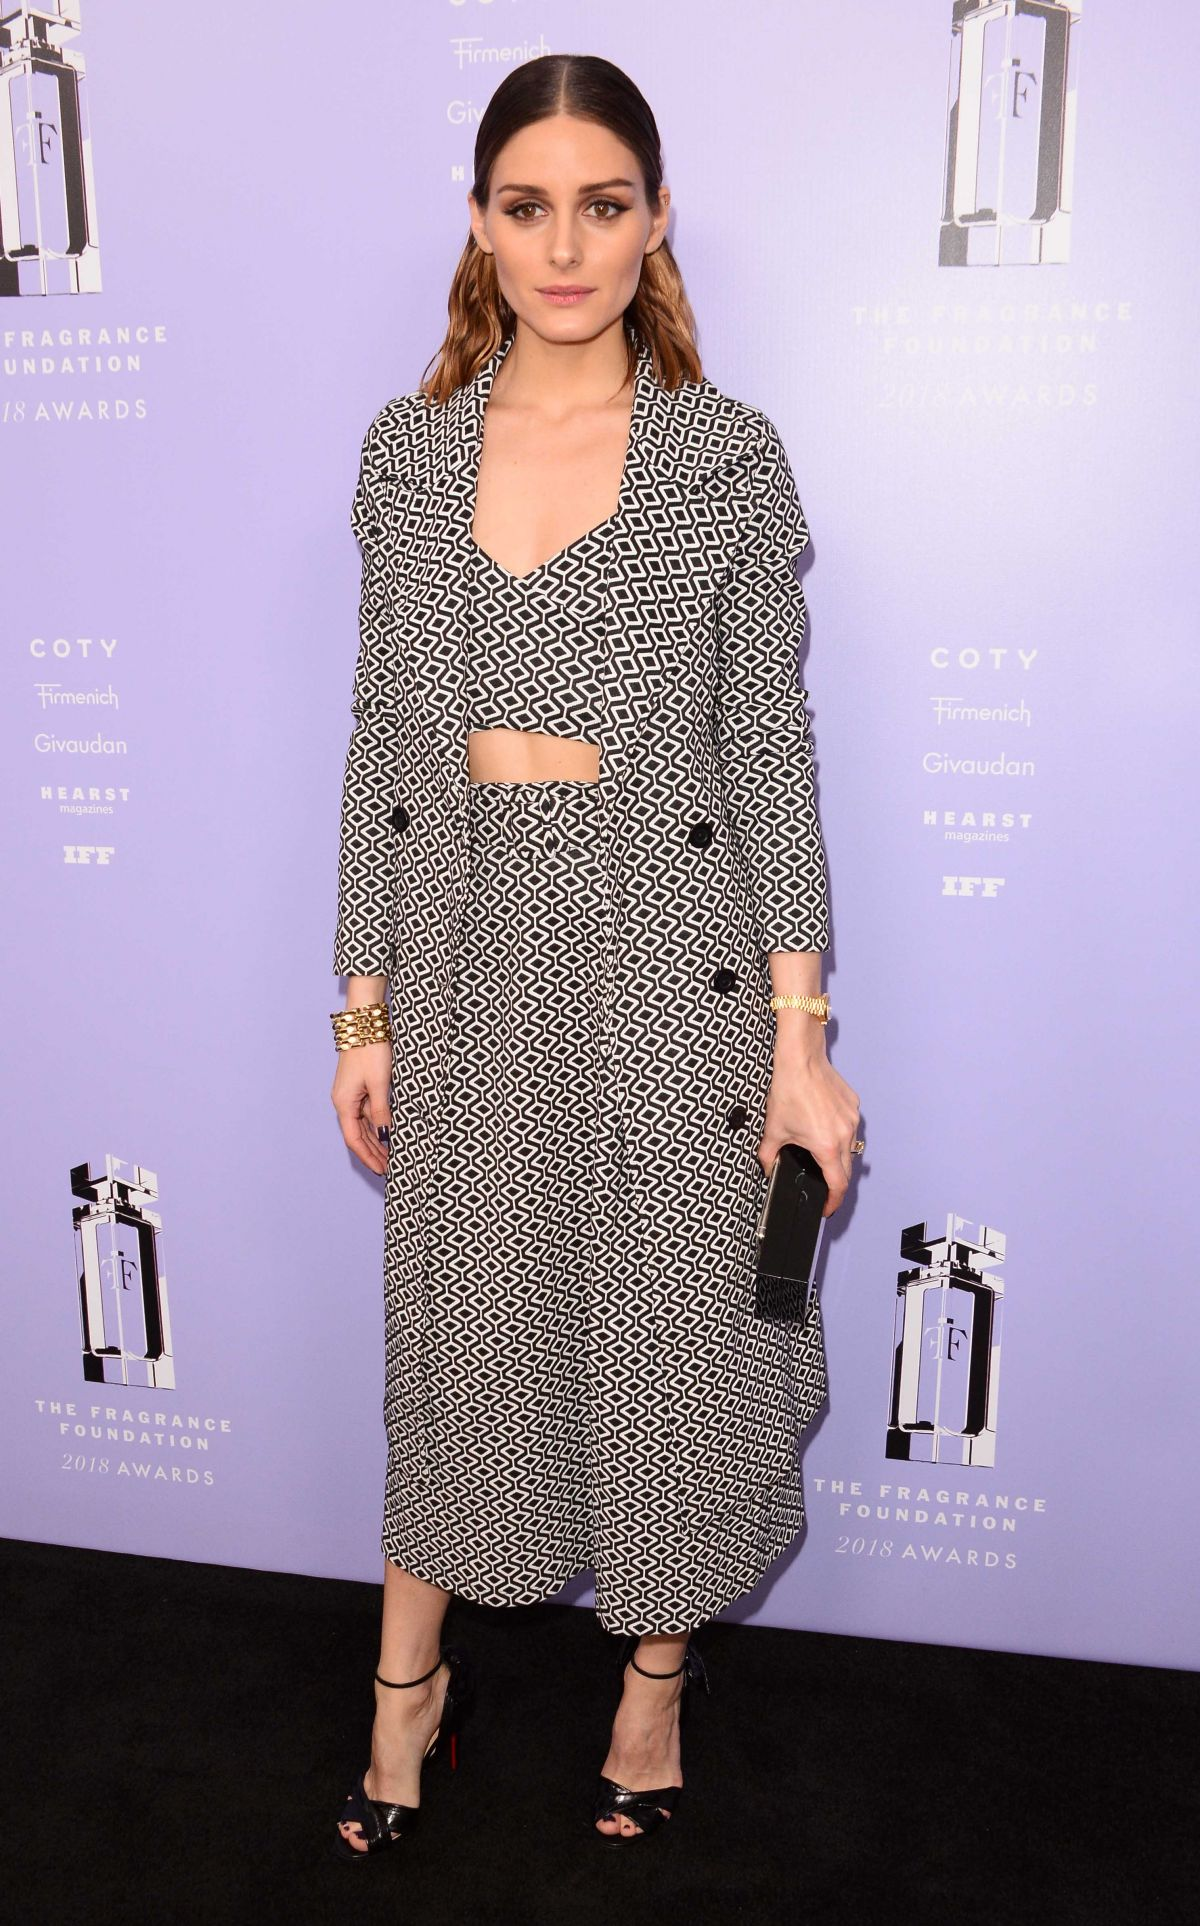 Olivia palermo the fragrance foundation awards finalists luncheon in ny nude (23 photos)